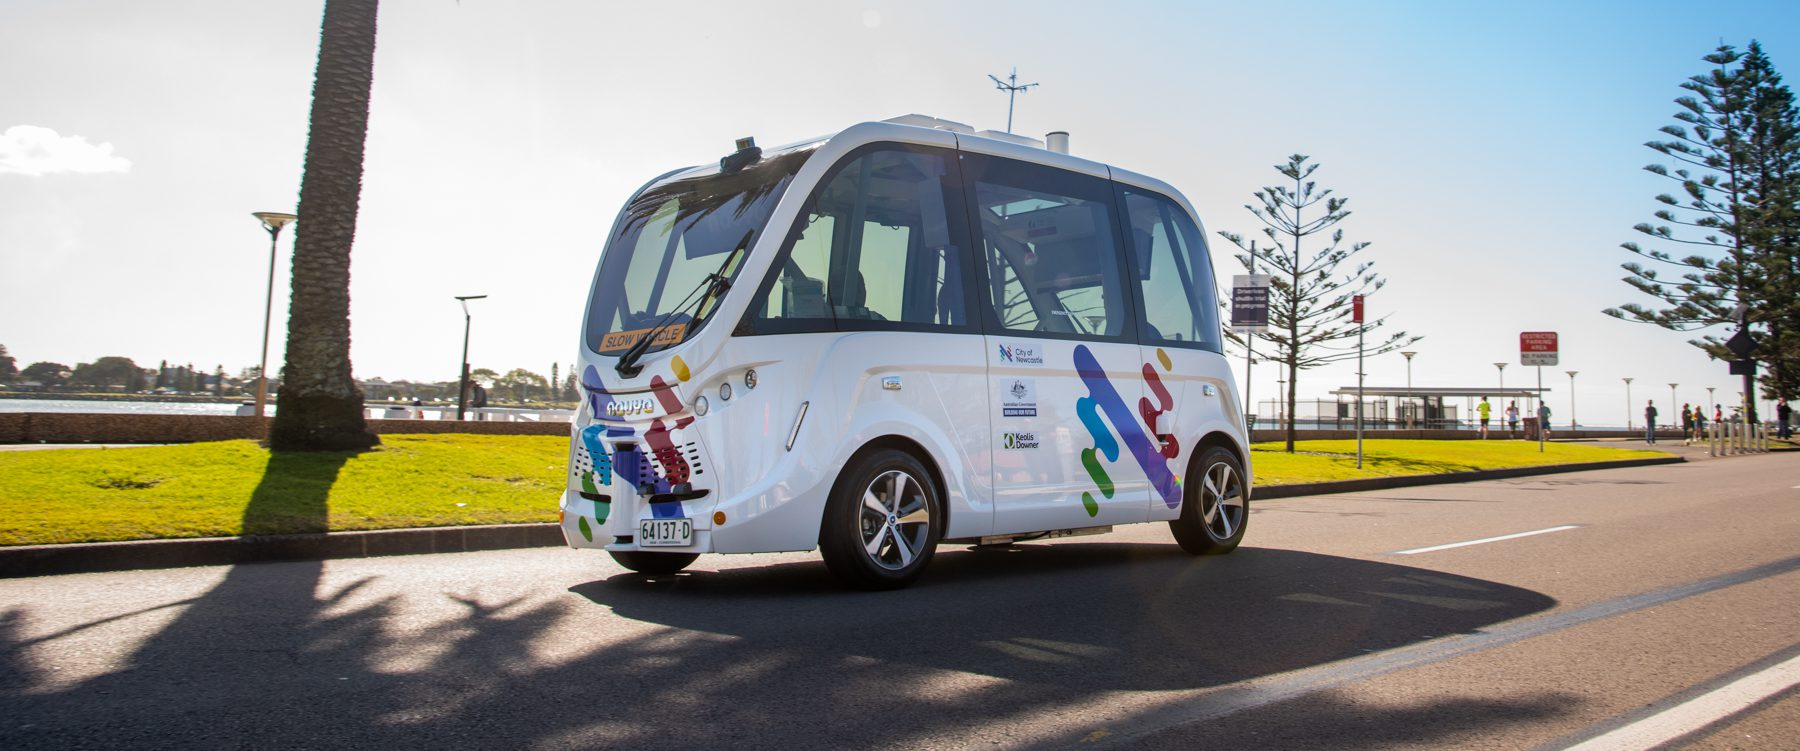 A new mobility option for Newcastle: New Driverless Shuttle starts operating